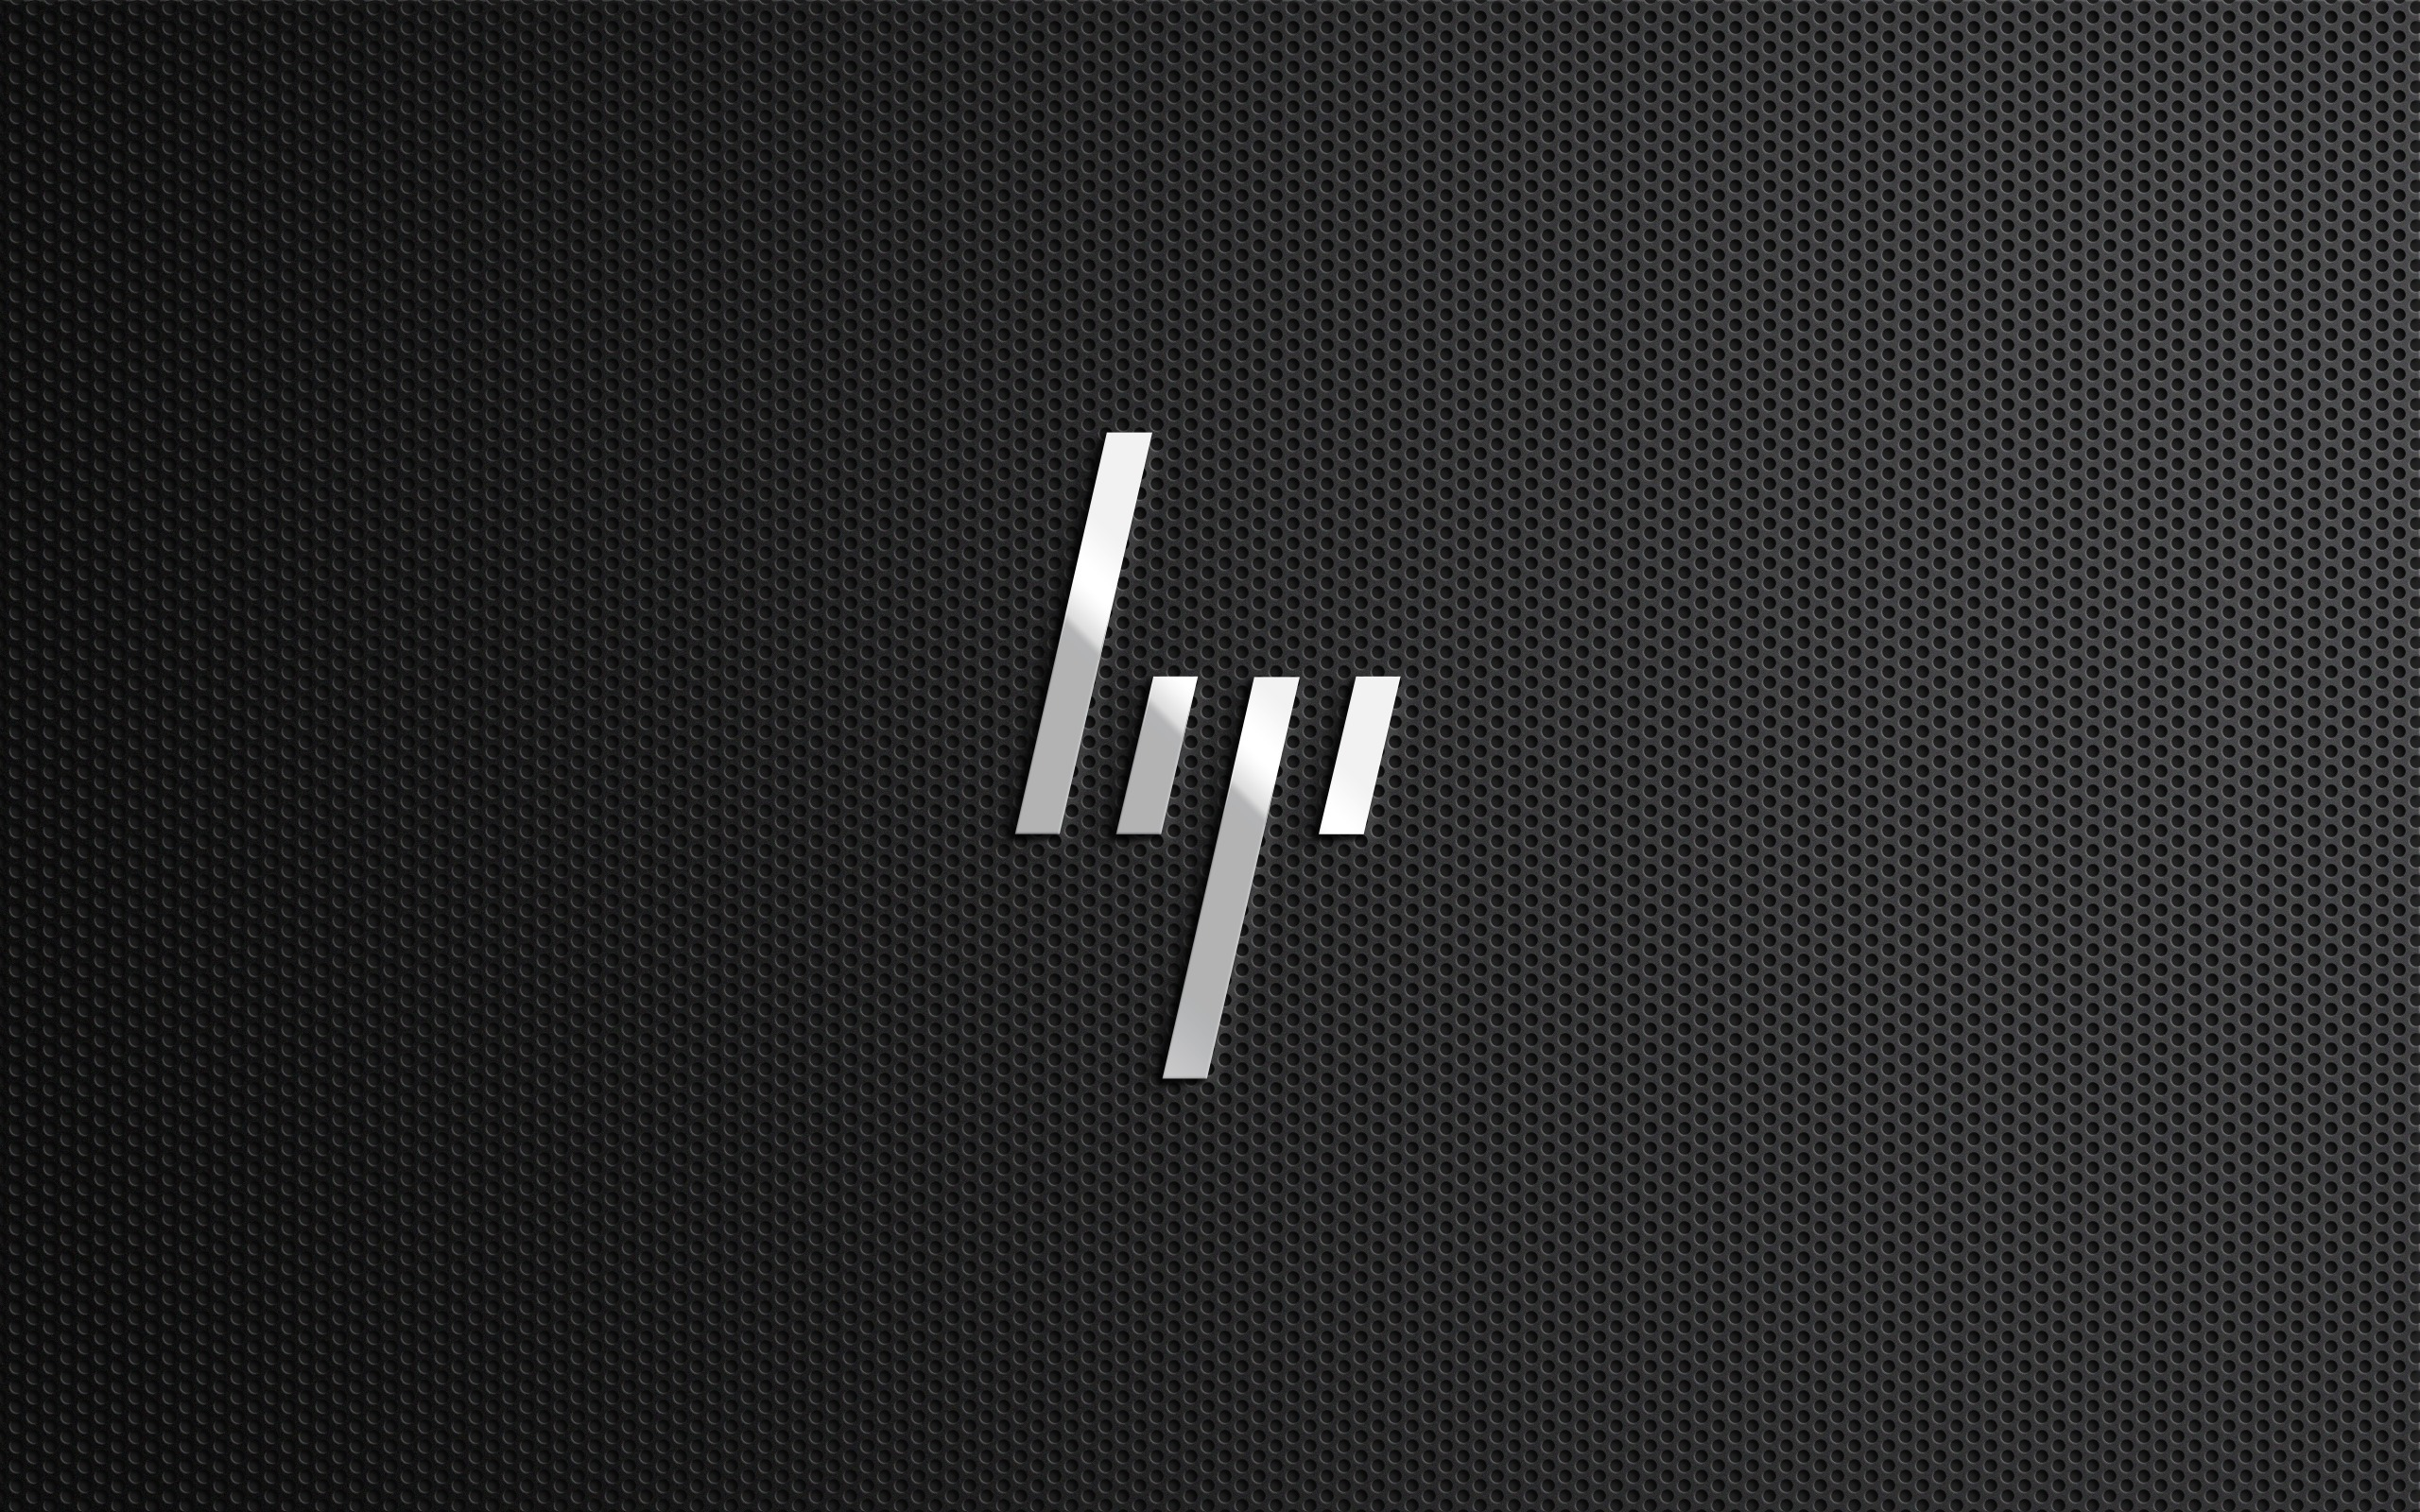 Image HP Logo Wallpapers And Stock Photos